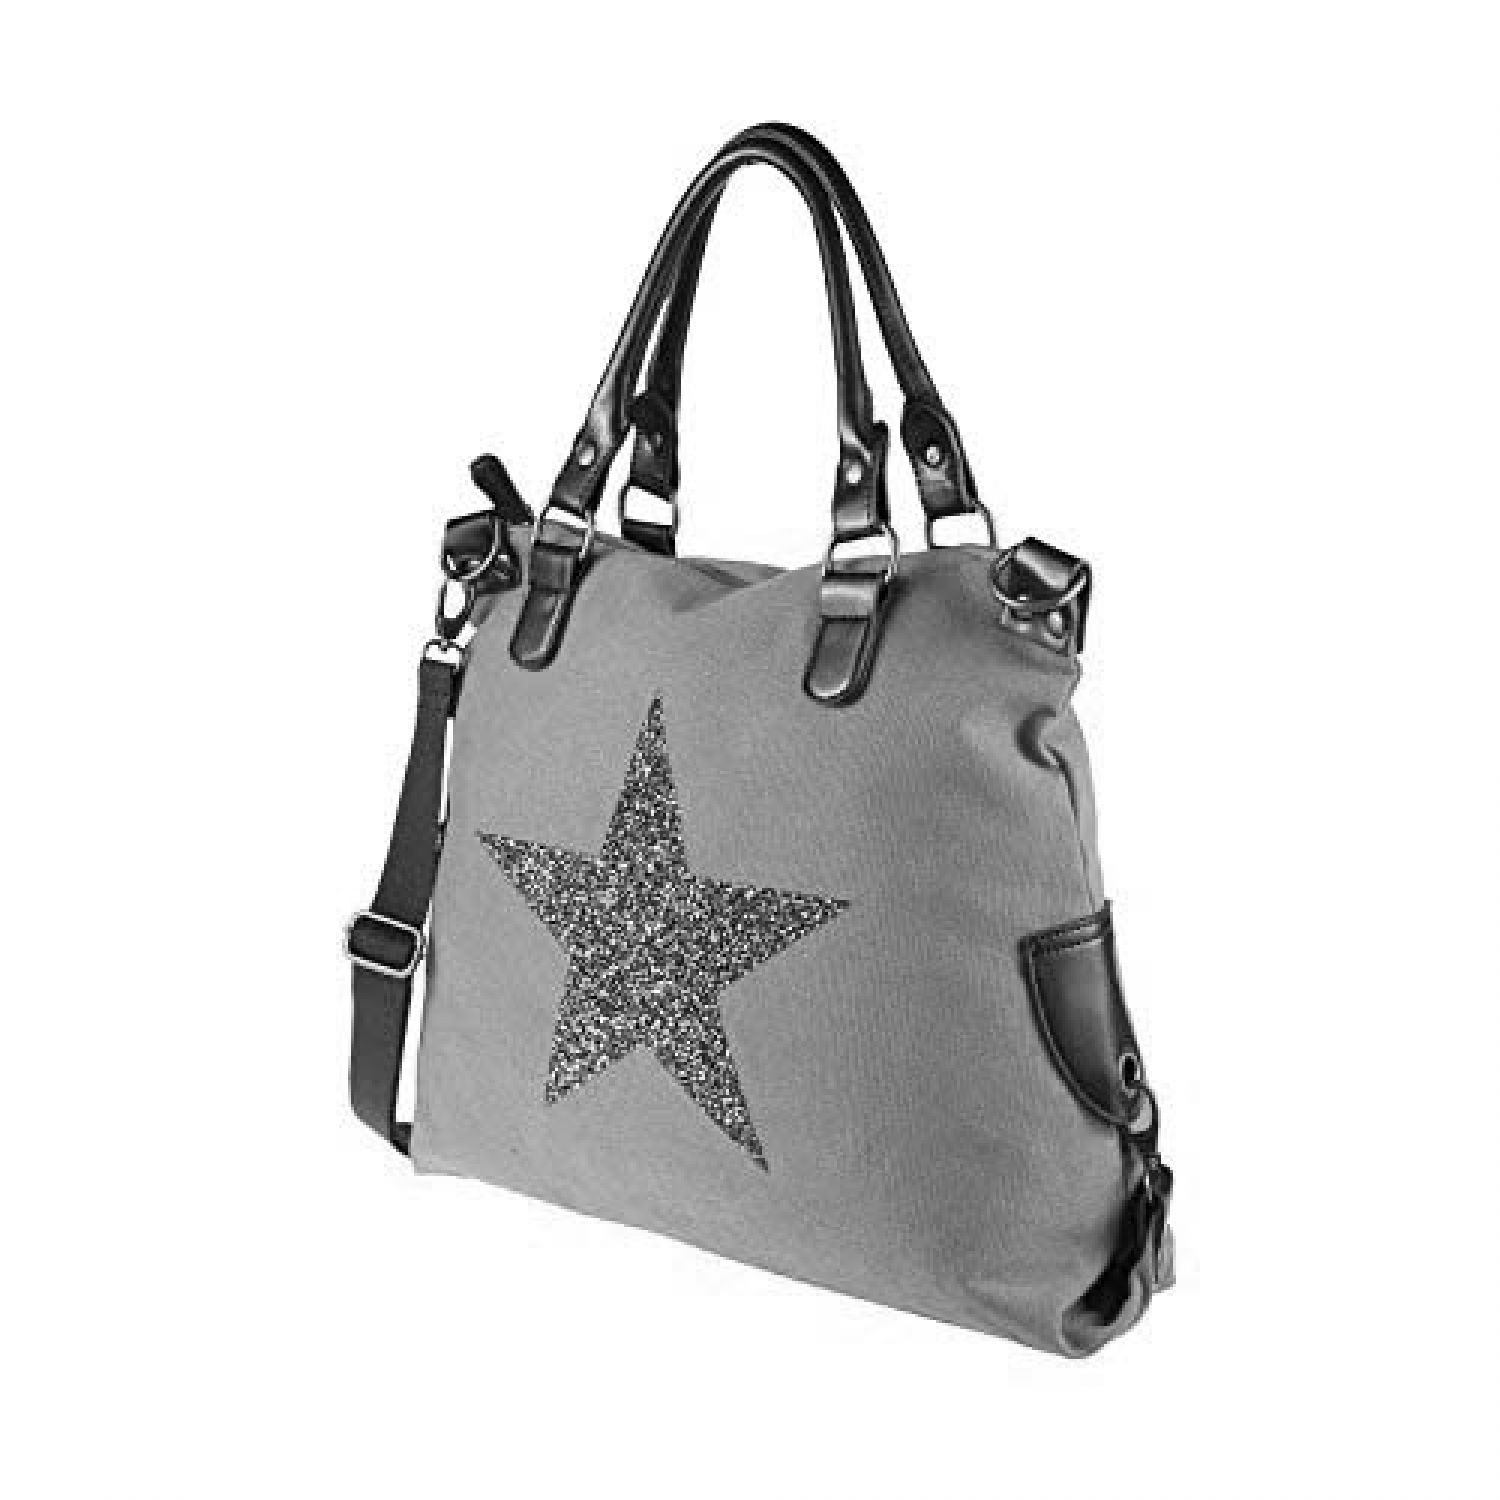 Sac A Main Bandouliere Strass : Xxl besace pour femme din a ?toile sac toile ger